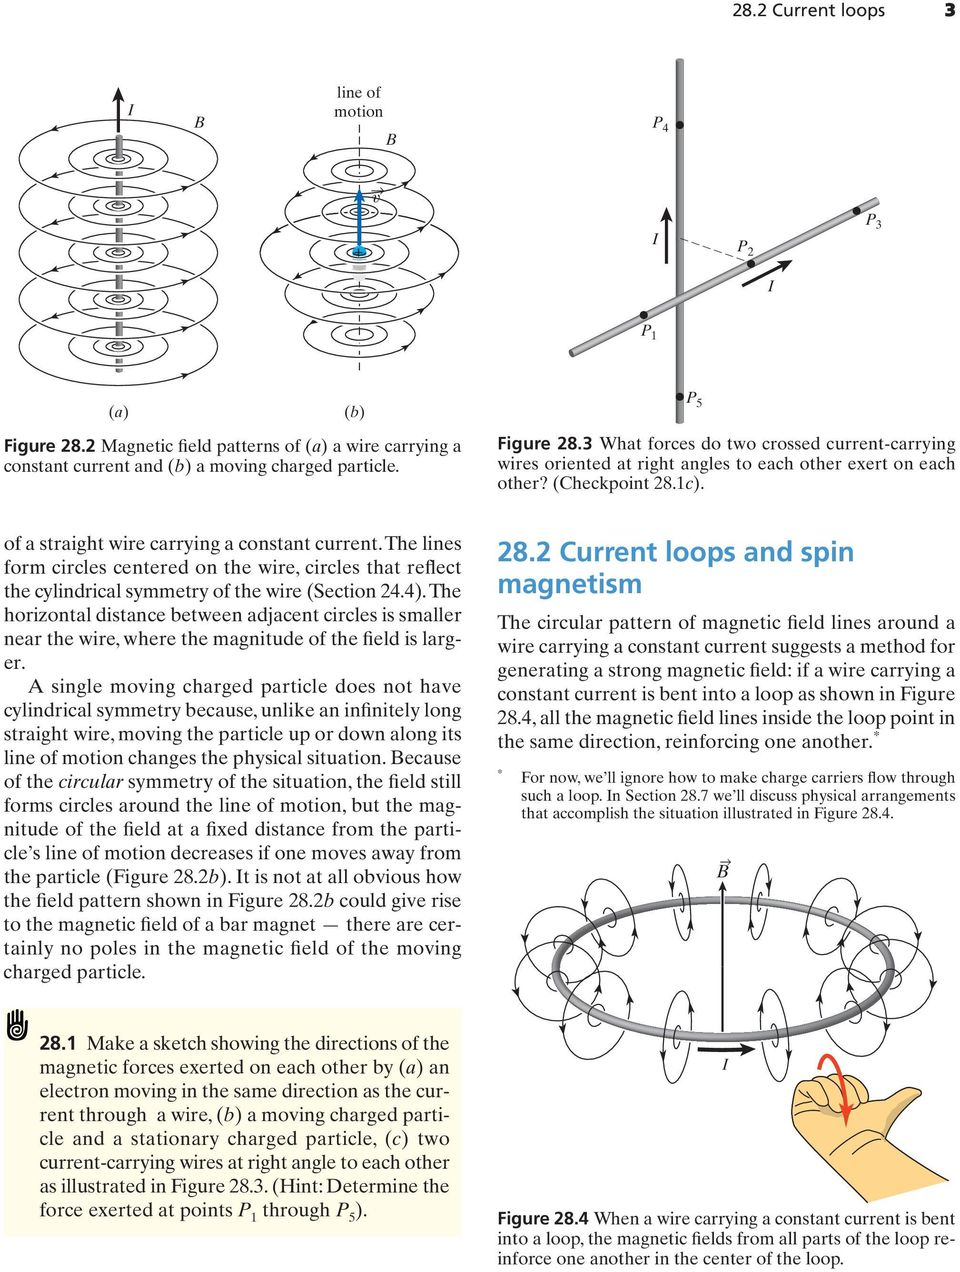 Magnetic fields of charged particles in motion - PDF